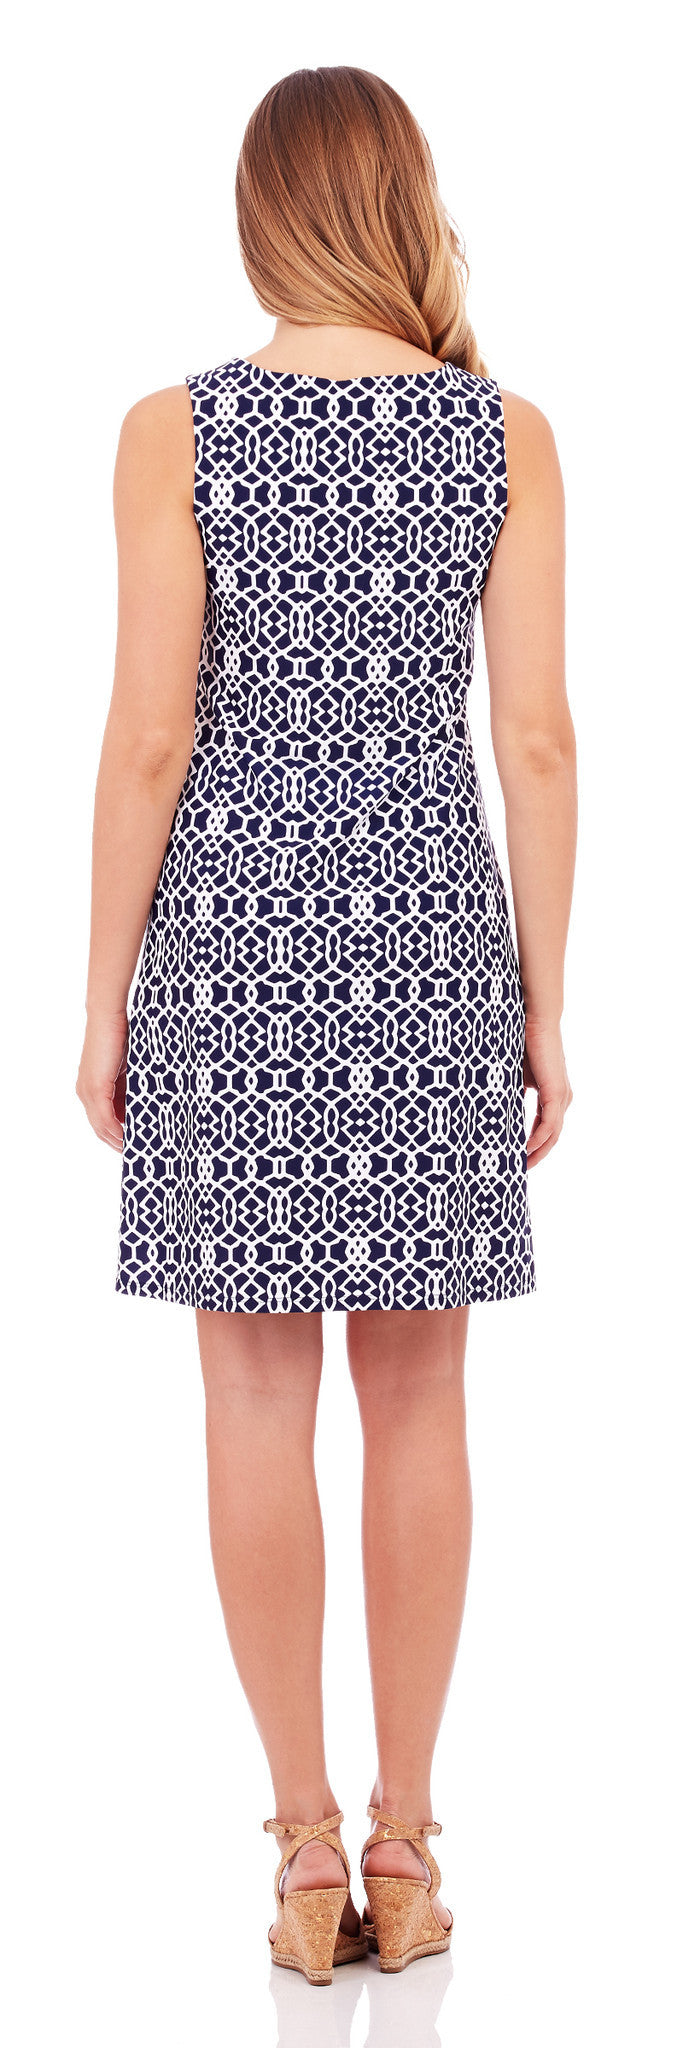 Jude Connally Beth Dress in Lattice Geo Navy